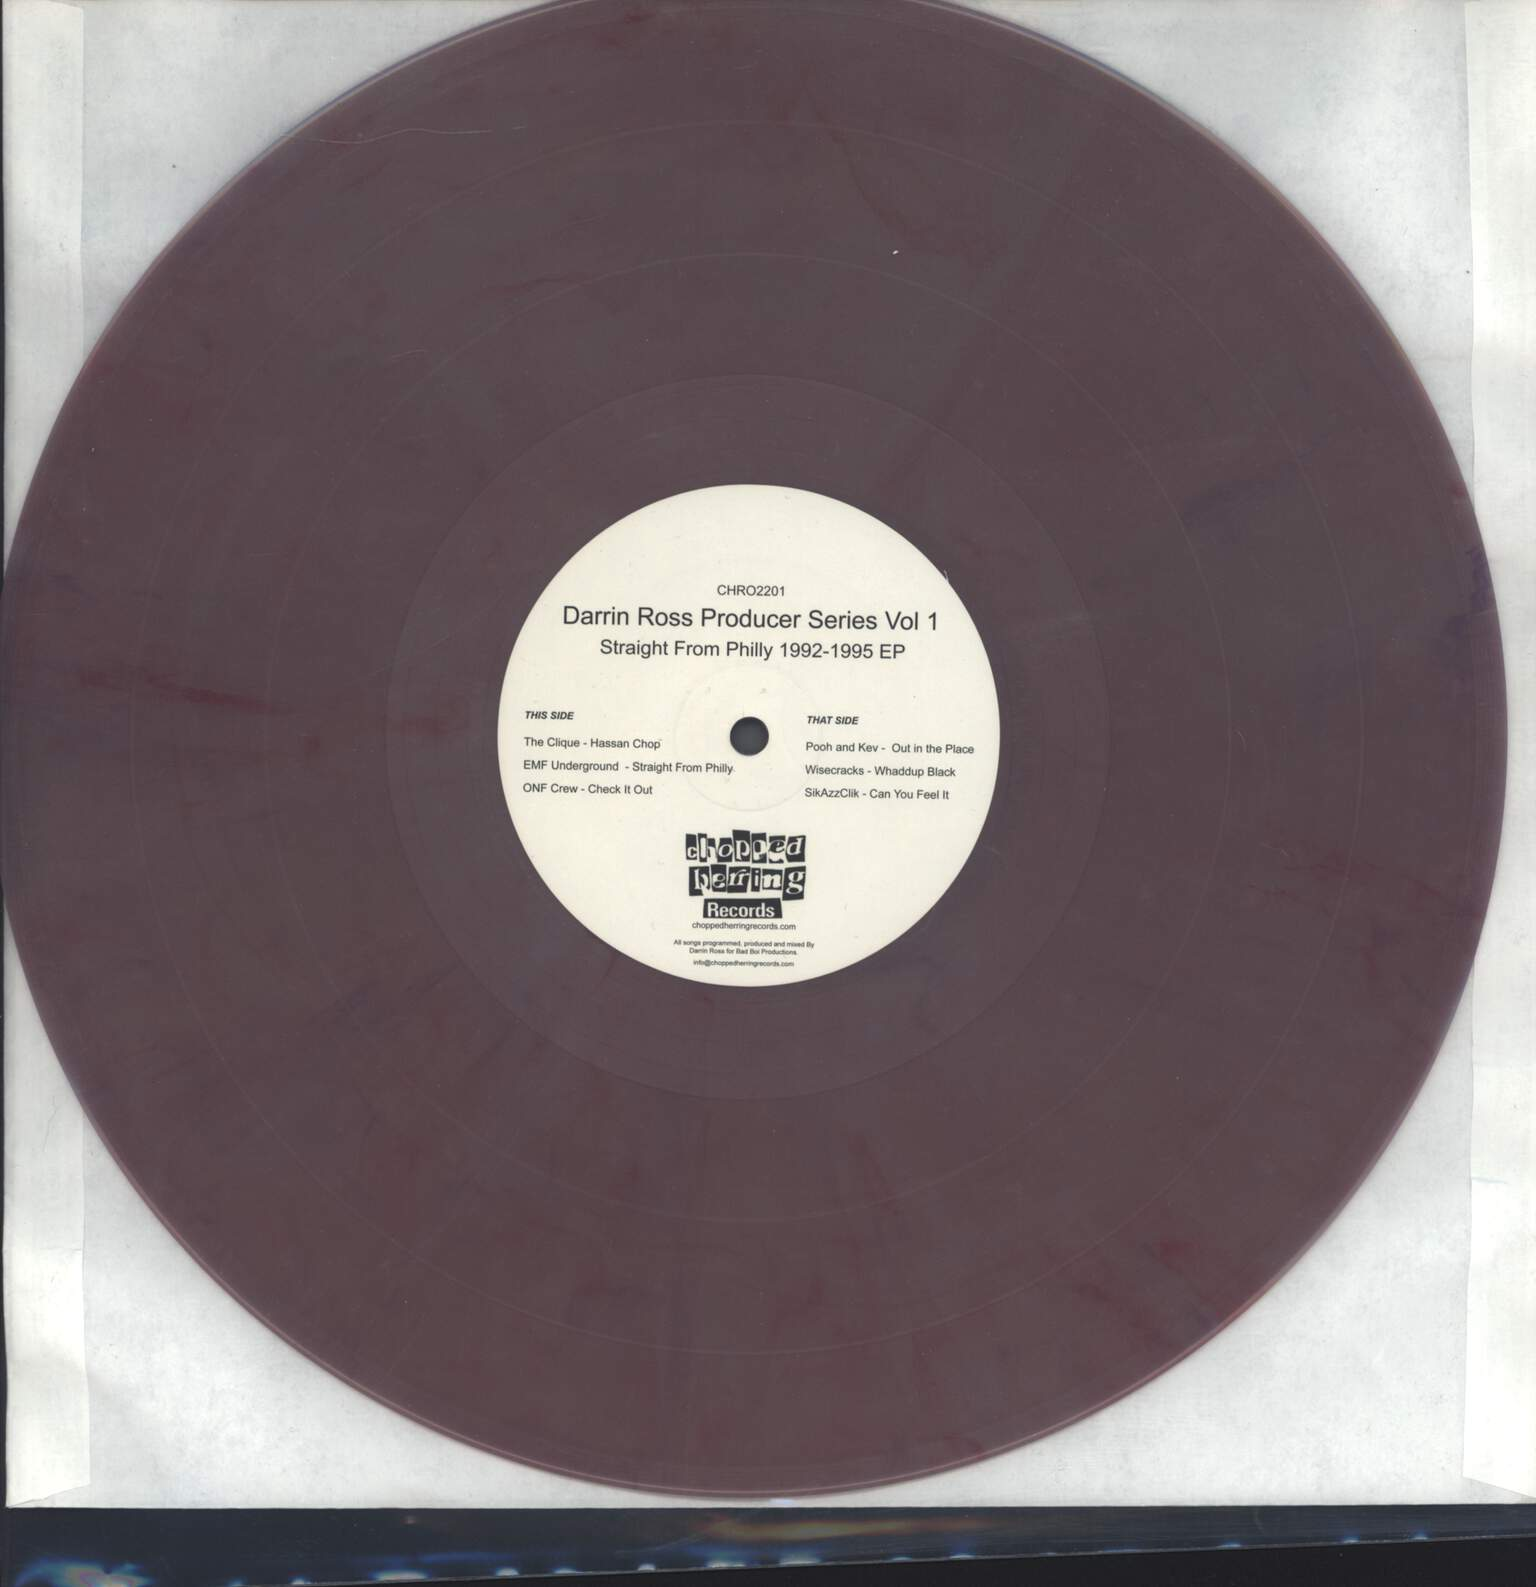 "Various: Darrin Ross Producer Series Vol 1 (Straight From Philly 1992-1995 EP), 12"" Maxi Single (Vinyl)"